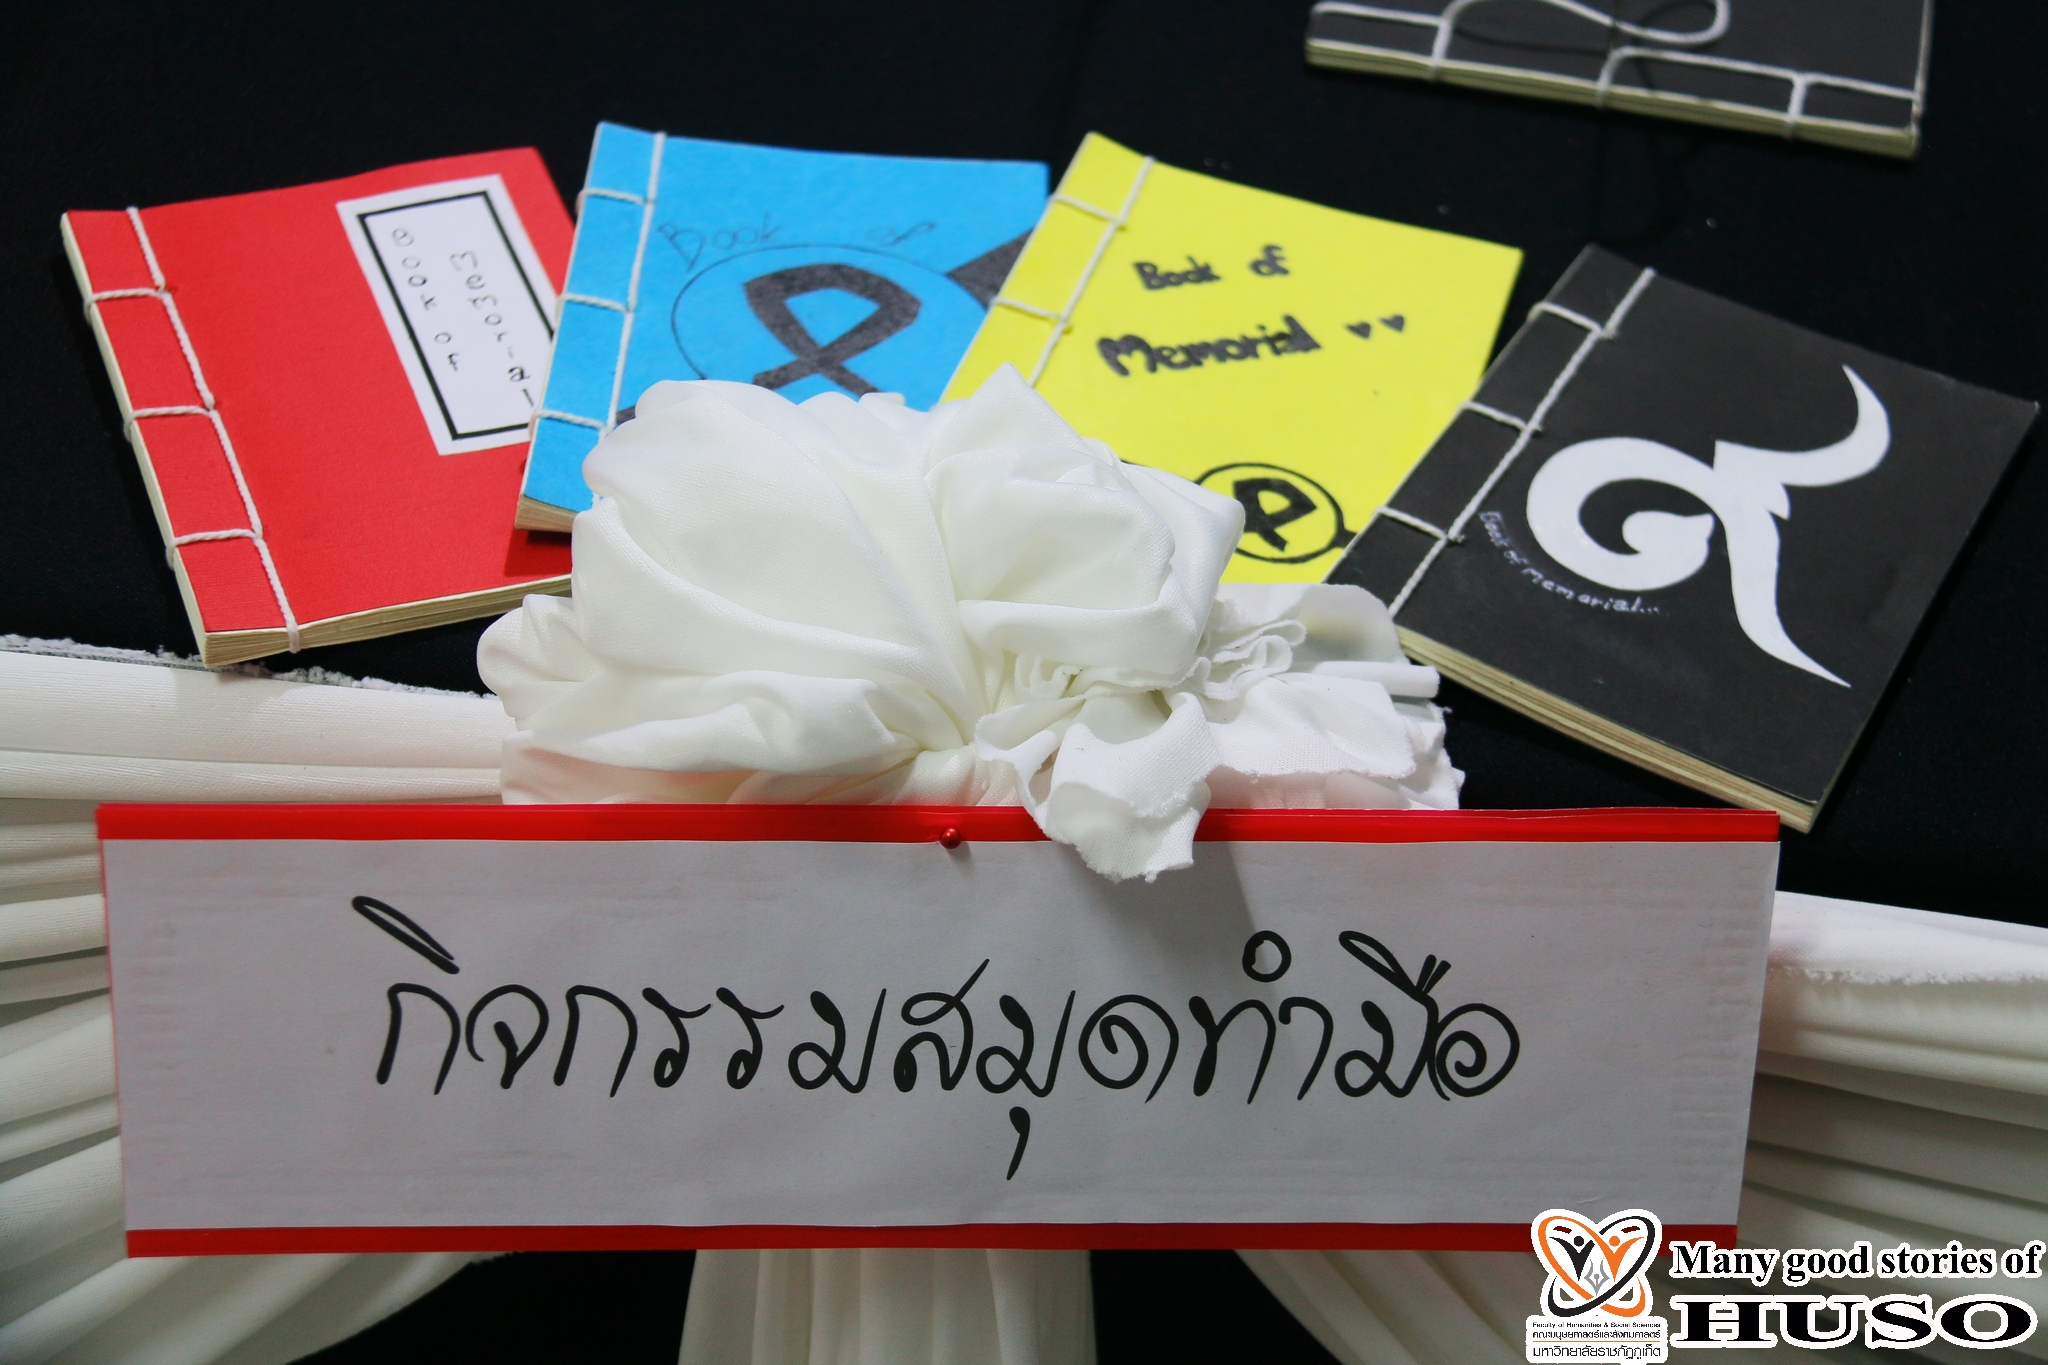 HUSO PKRU Information and Library Science Exhibition Book of Memorial and Knowledge Tung Lanna 14